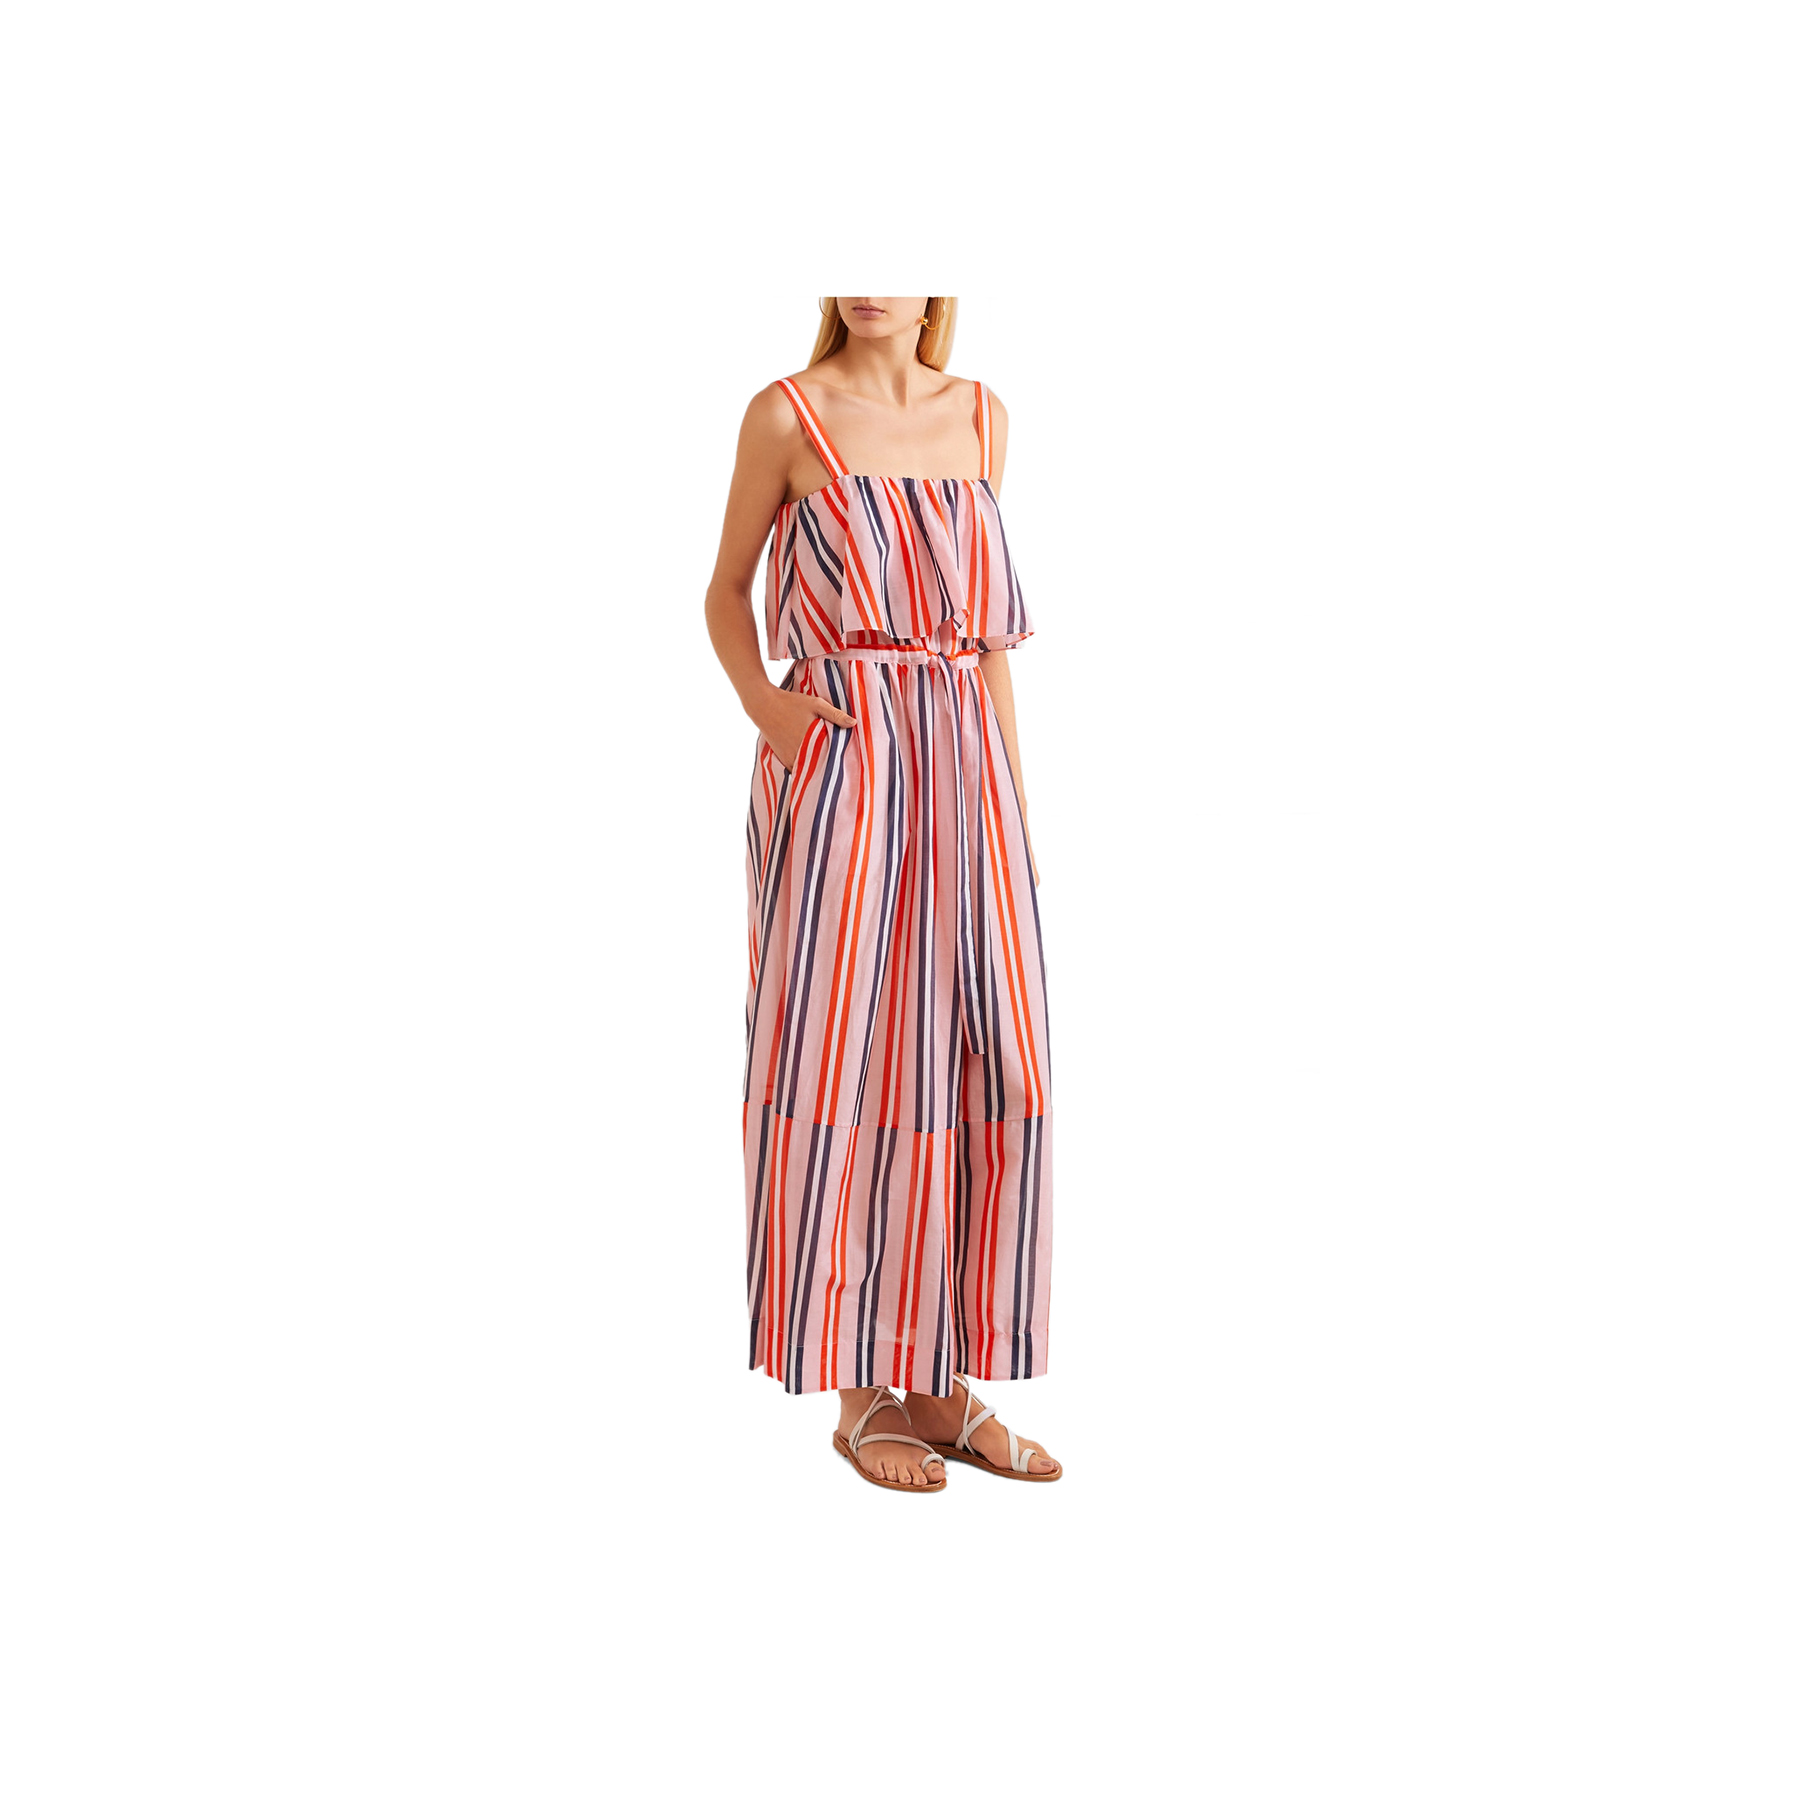 diane-von-furstenberg-striped-maxi-dress